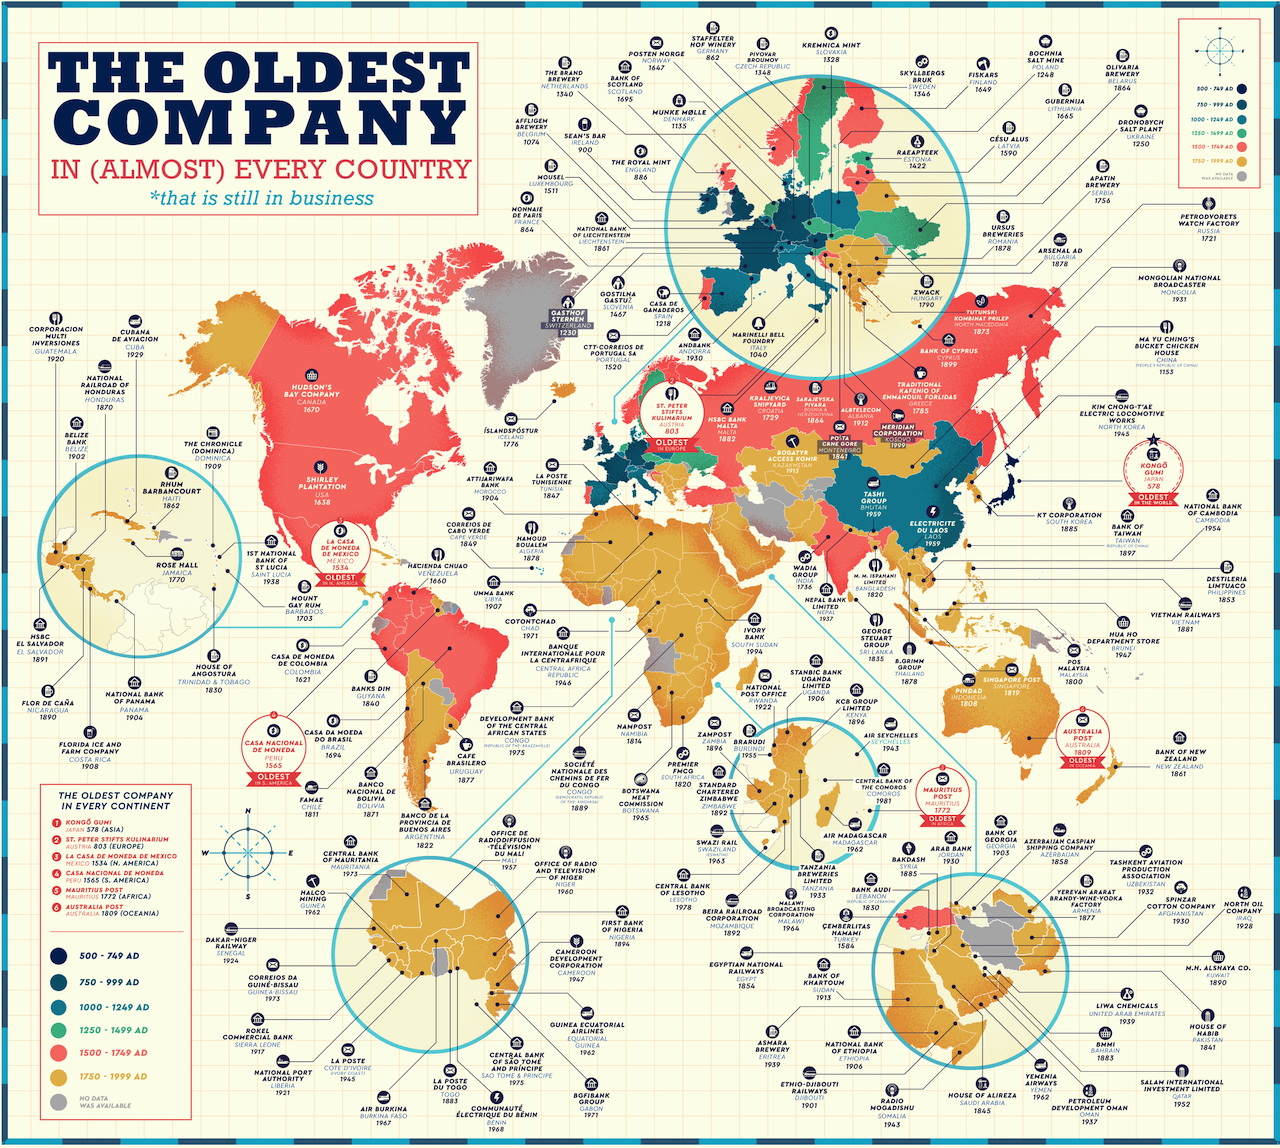 A Map of the Oldest Companies in Almost Every Country Around the World That Are Still in Business